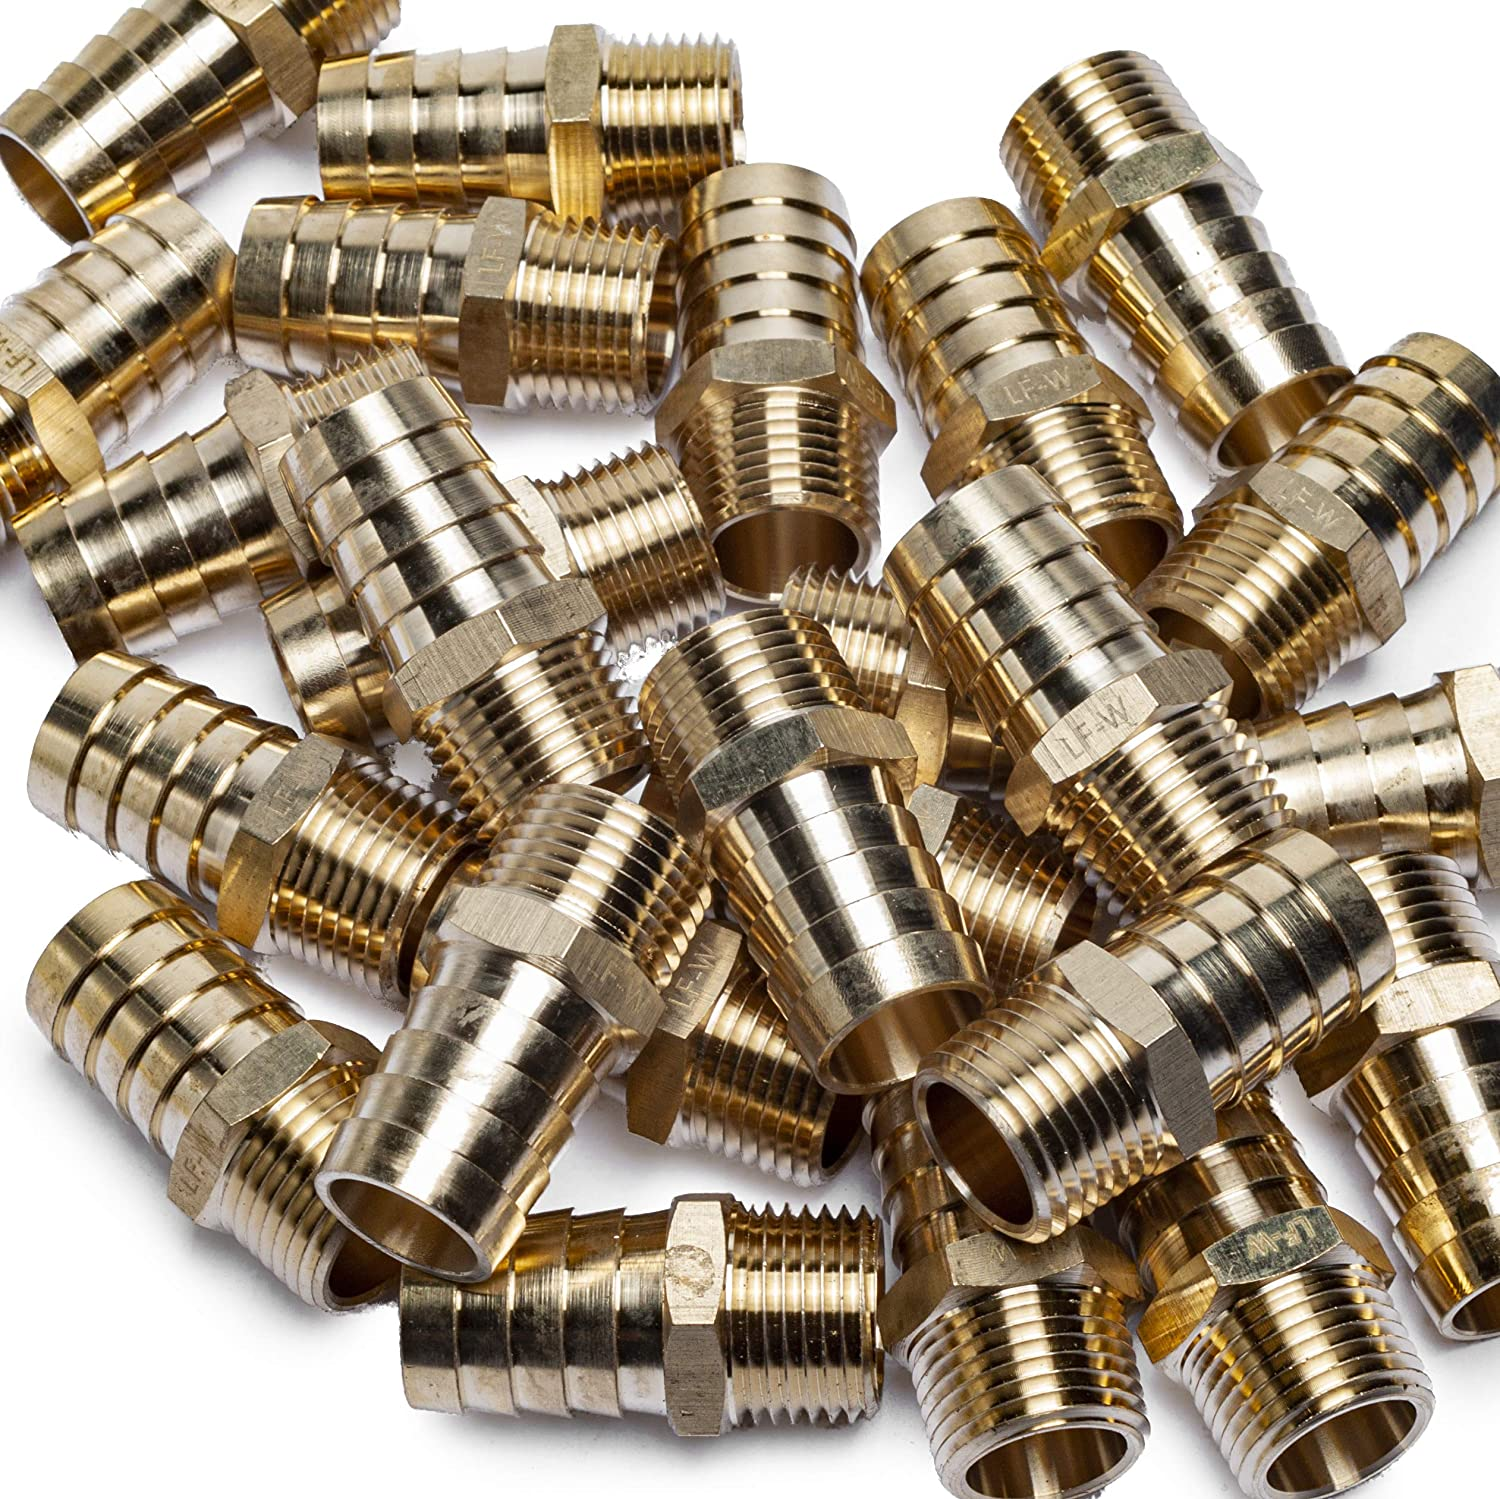 LTWFITTING Lead Free Brass Barbed Fitting Coupler/Connector 3/4